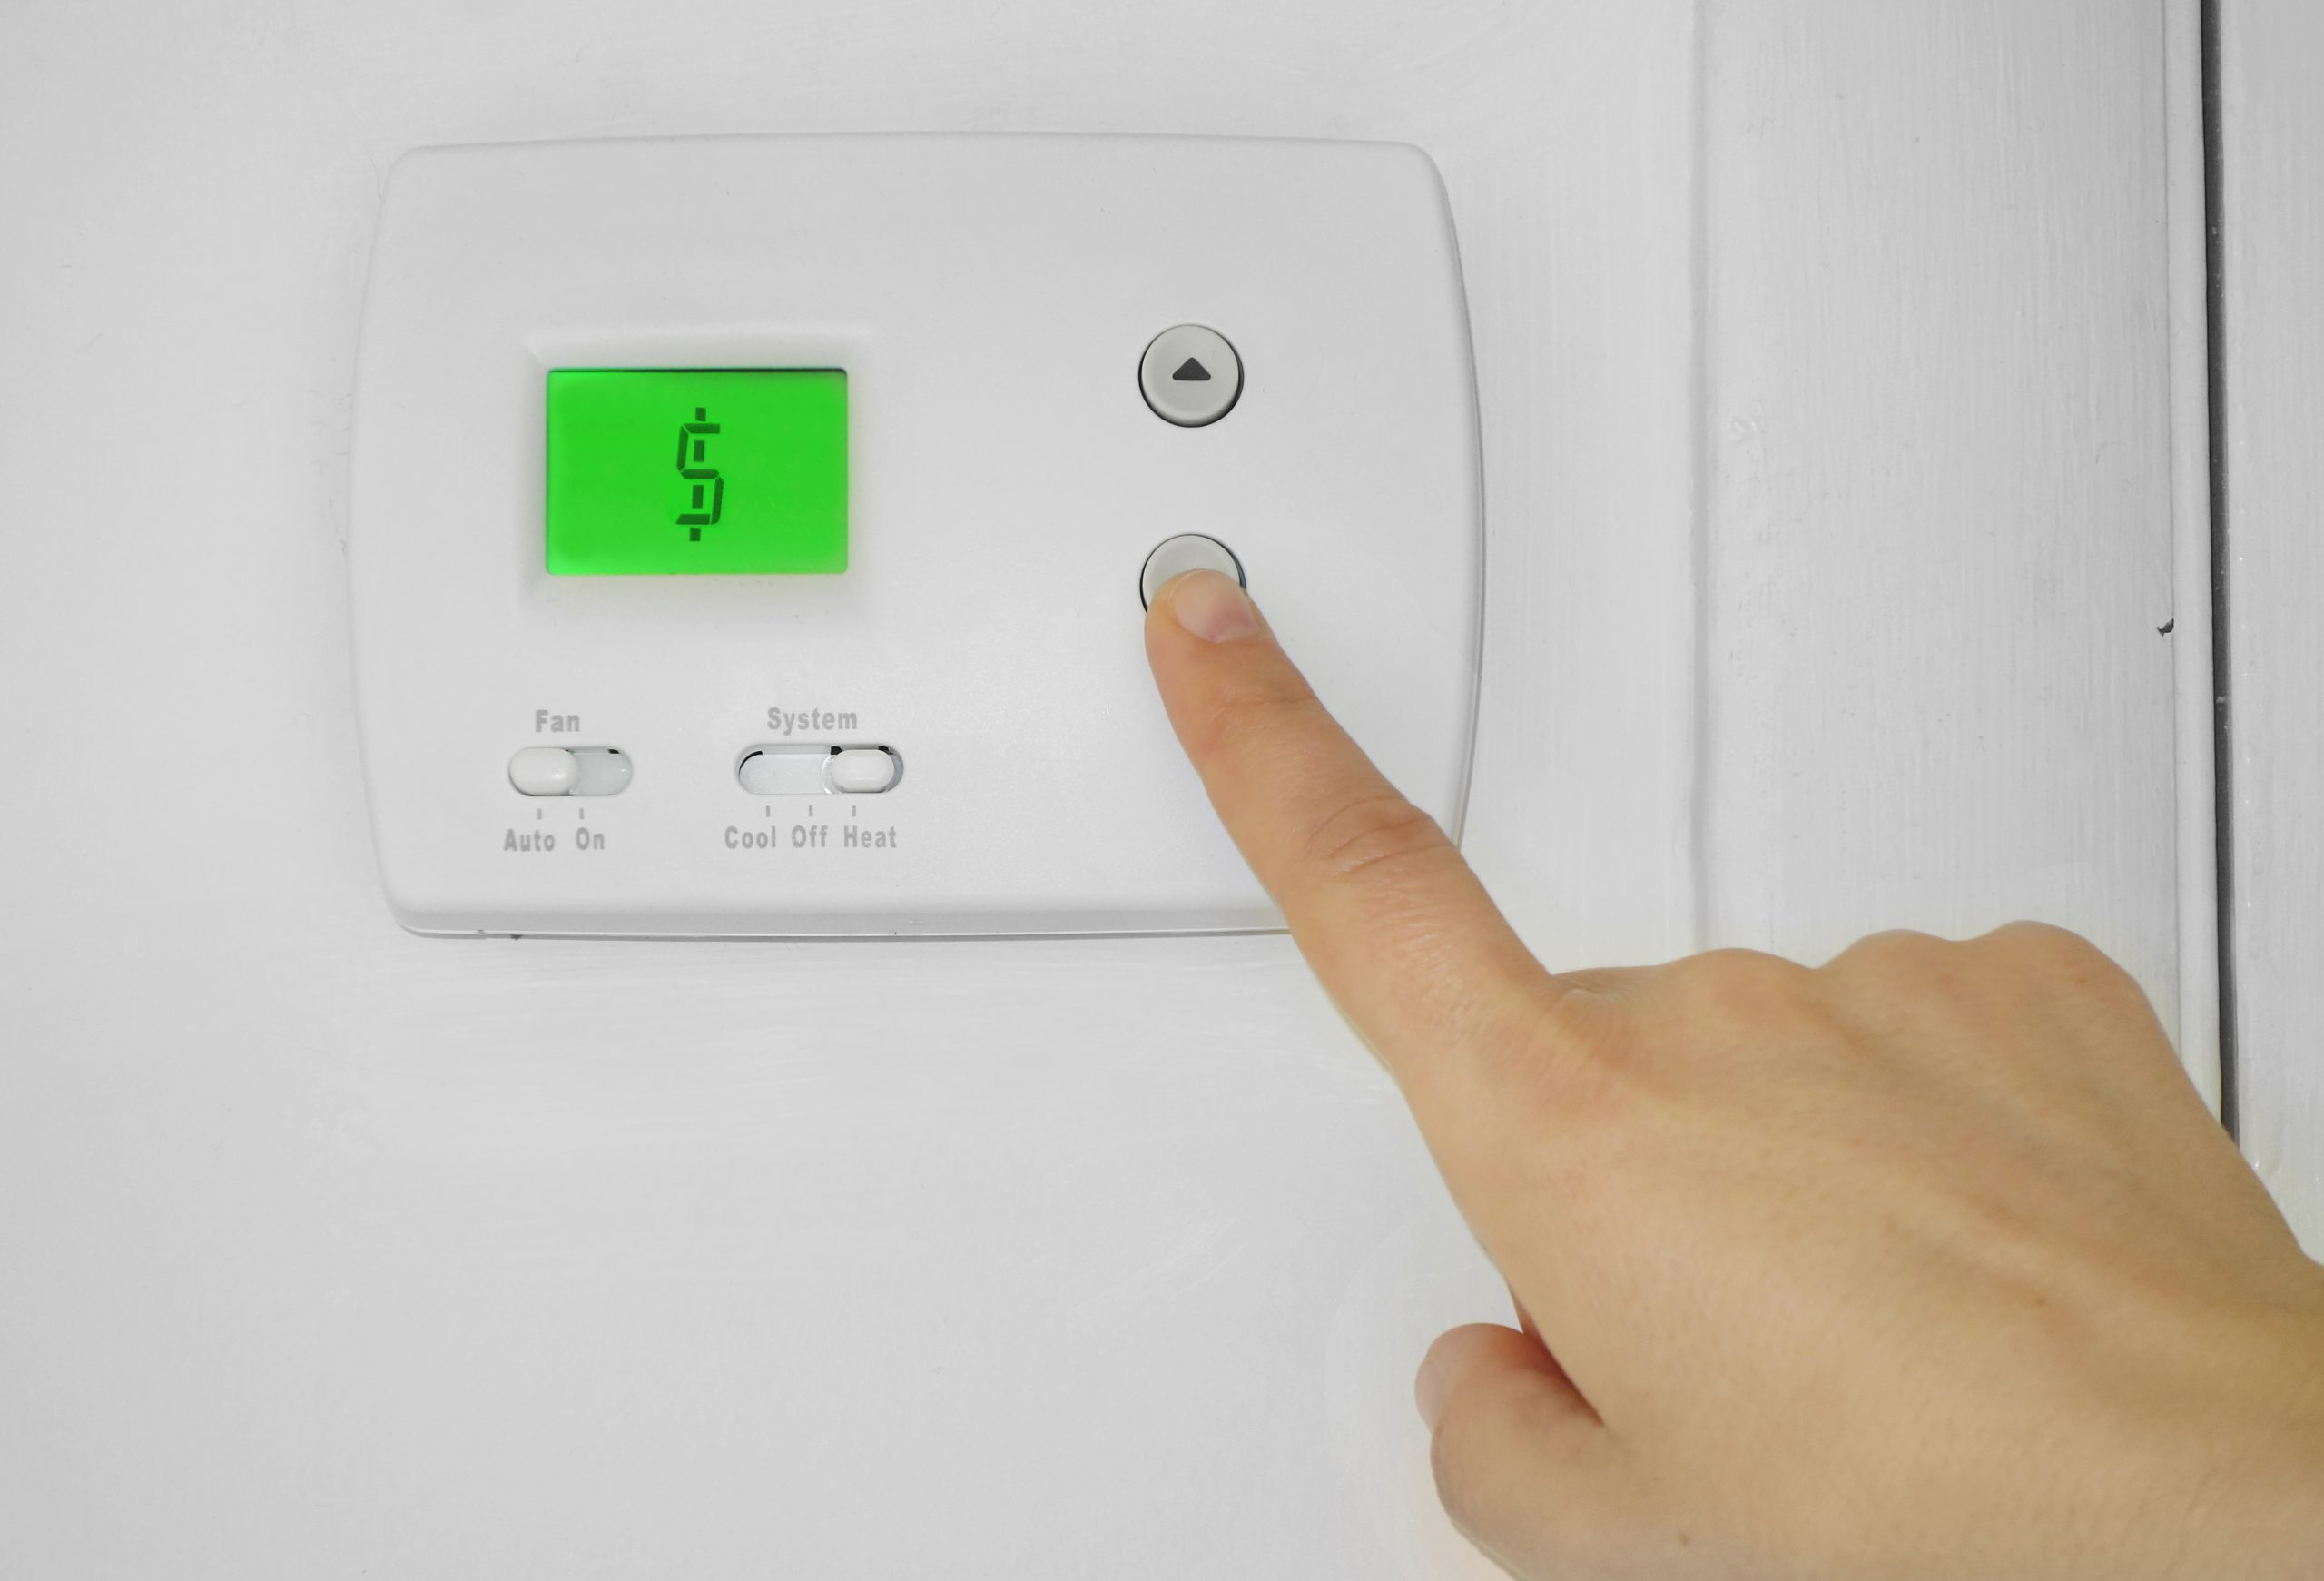 A finger pressing a button on an air conditioner unit, whose screen is green and displaying a $ dollar sign, posing the question, How much is an air conditioning unit in Boca Raton?